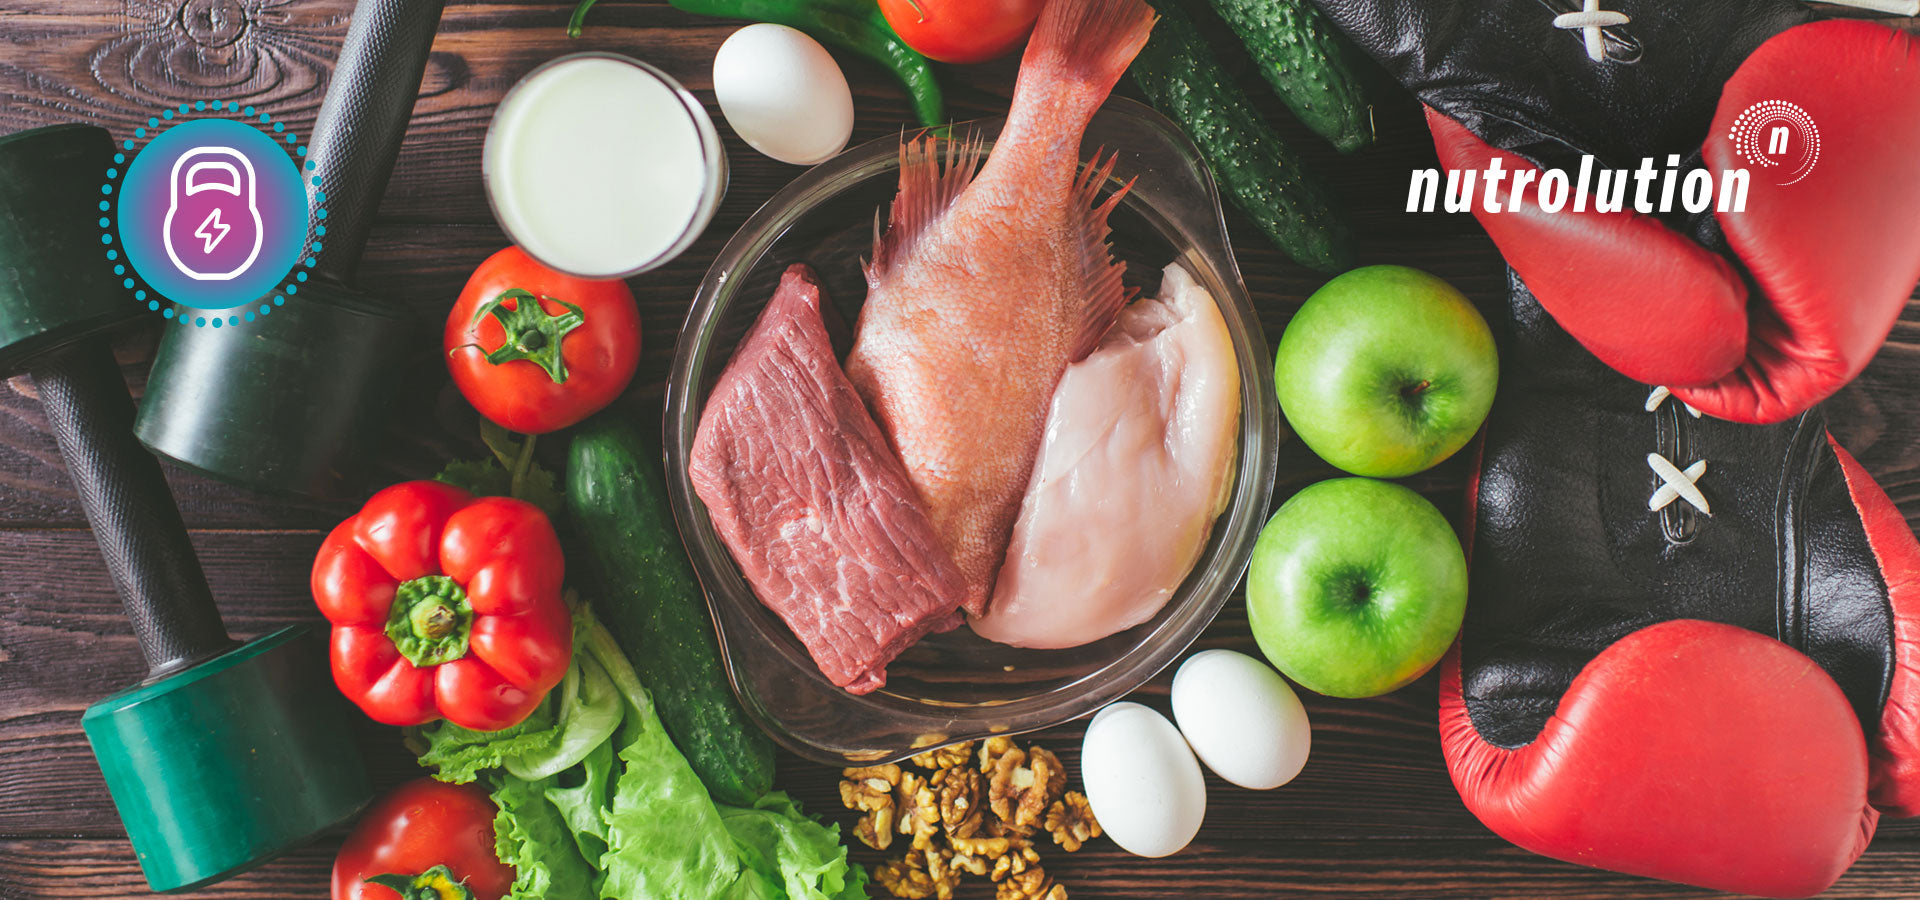 Protein supplement for muscle gain and fat loss